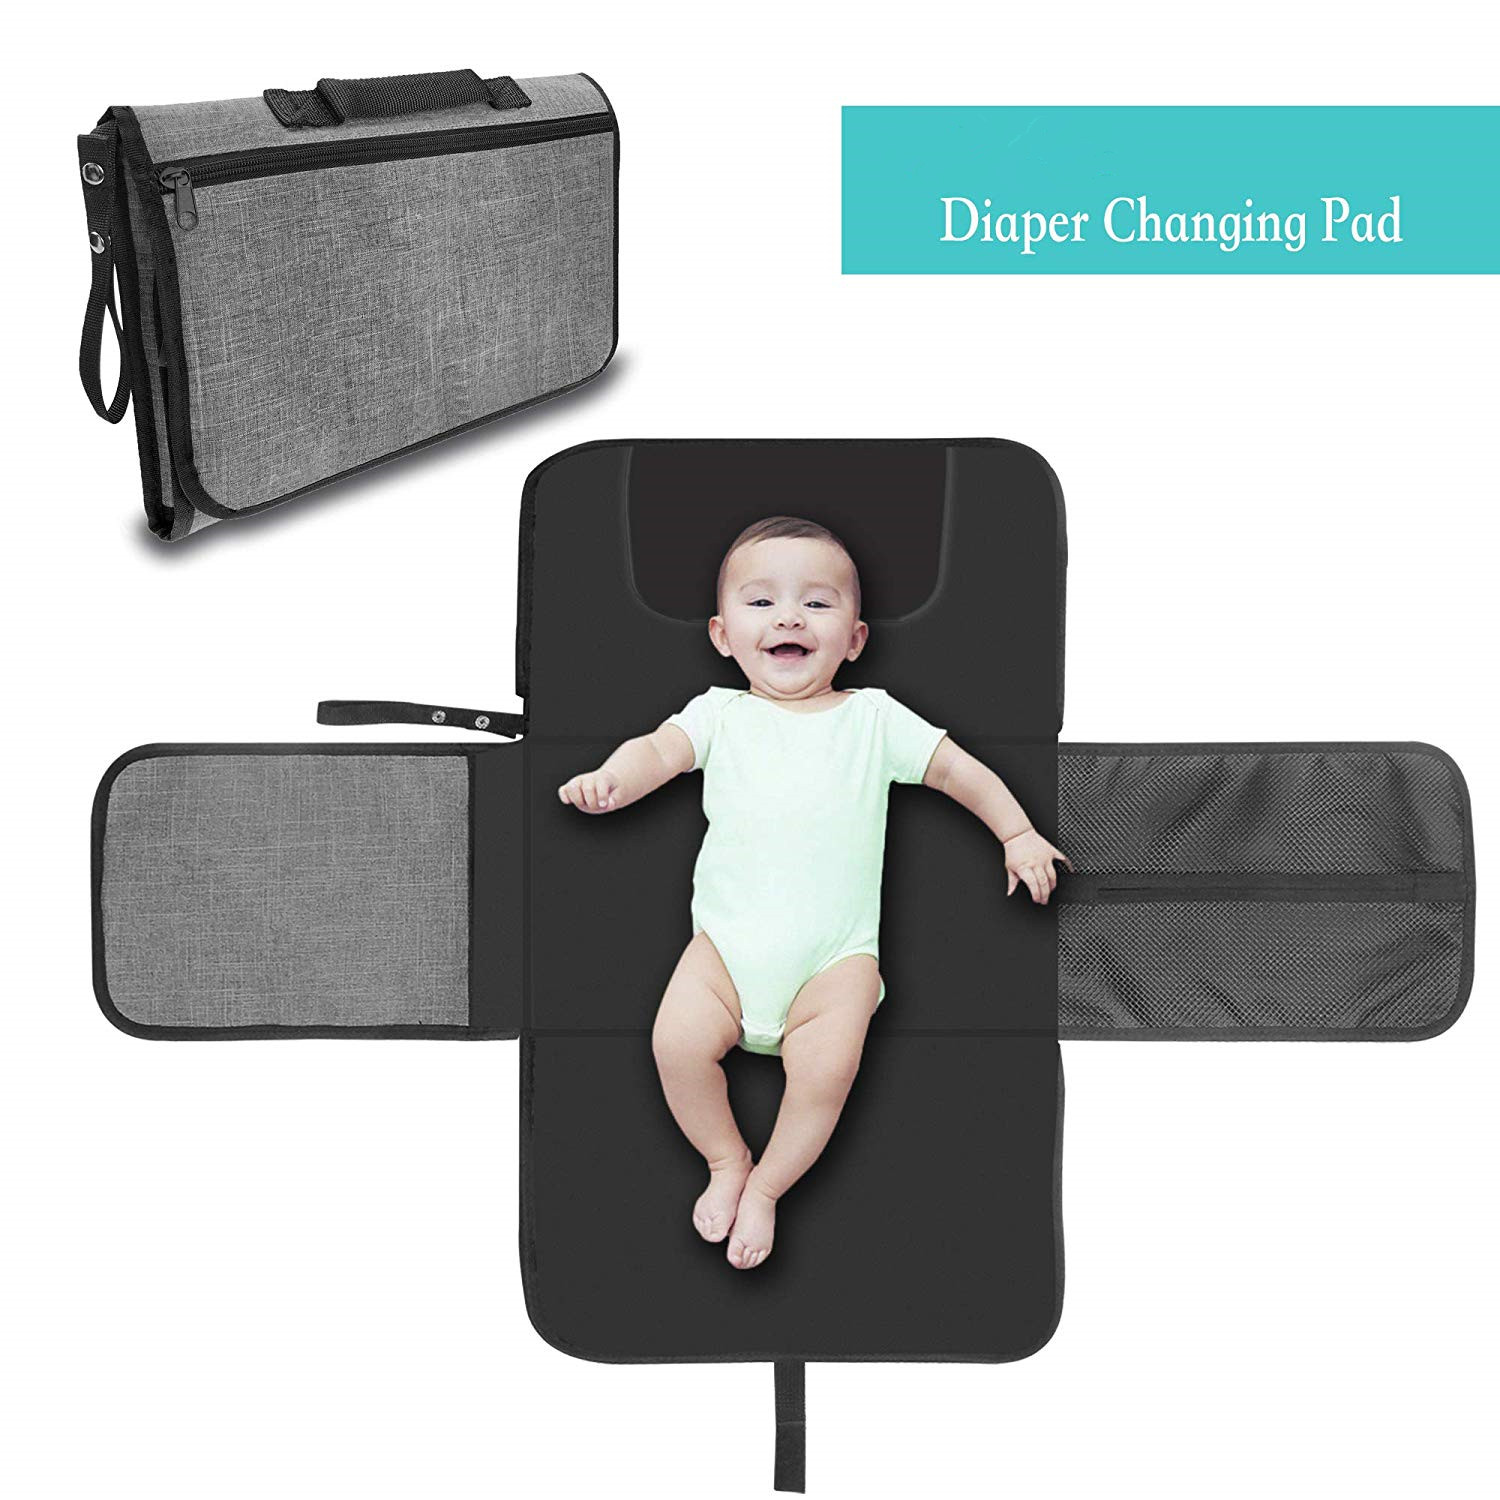 Portable Nappy Changing Mat, Waterproof Foldable Baby Changing Kit, Soft Pillow Diaper Pad Keep Baby Clean For Home Travel